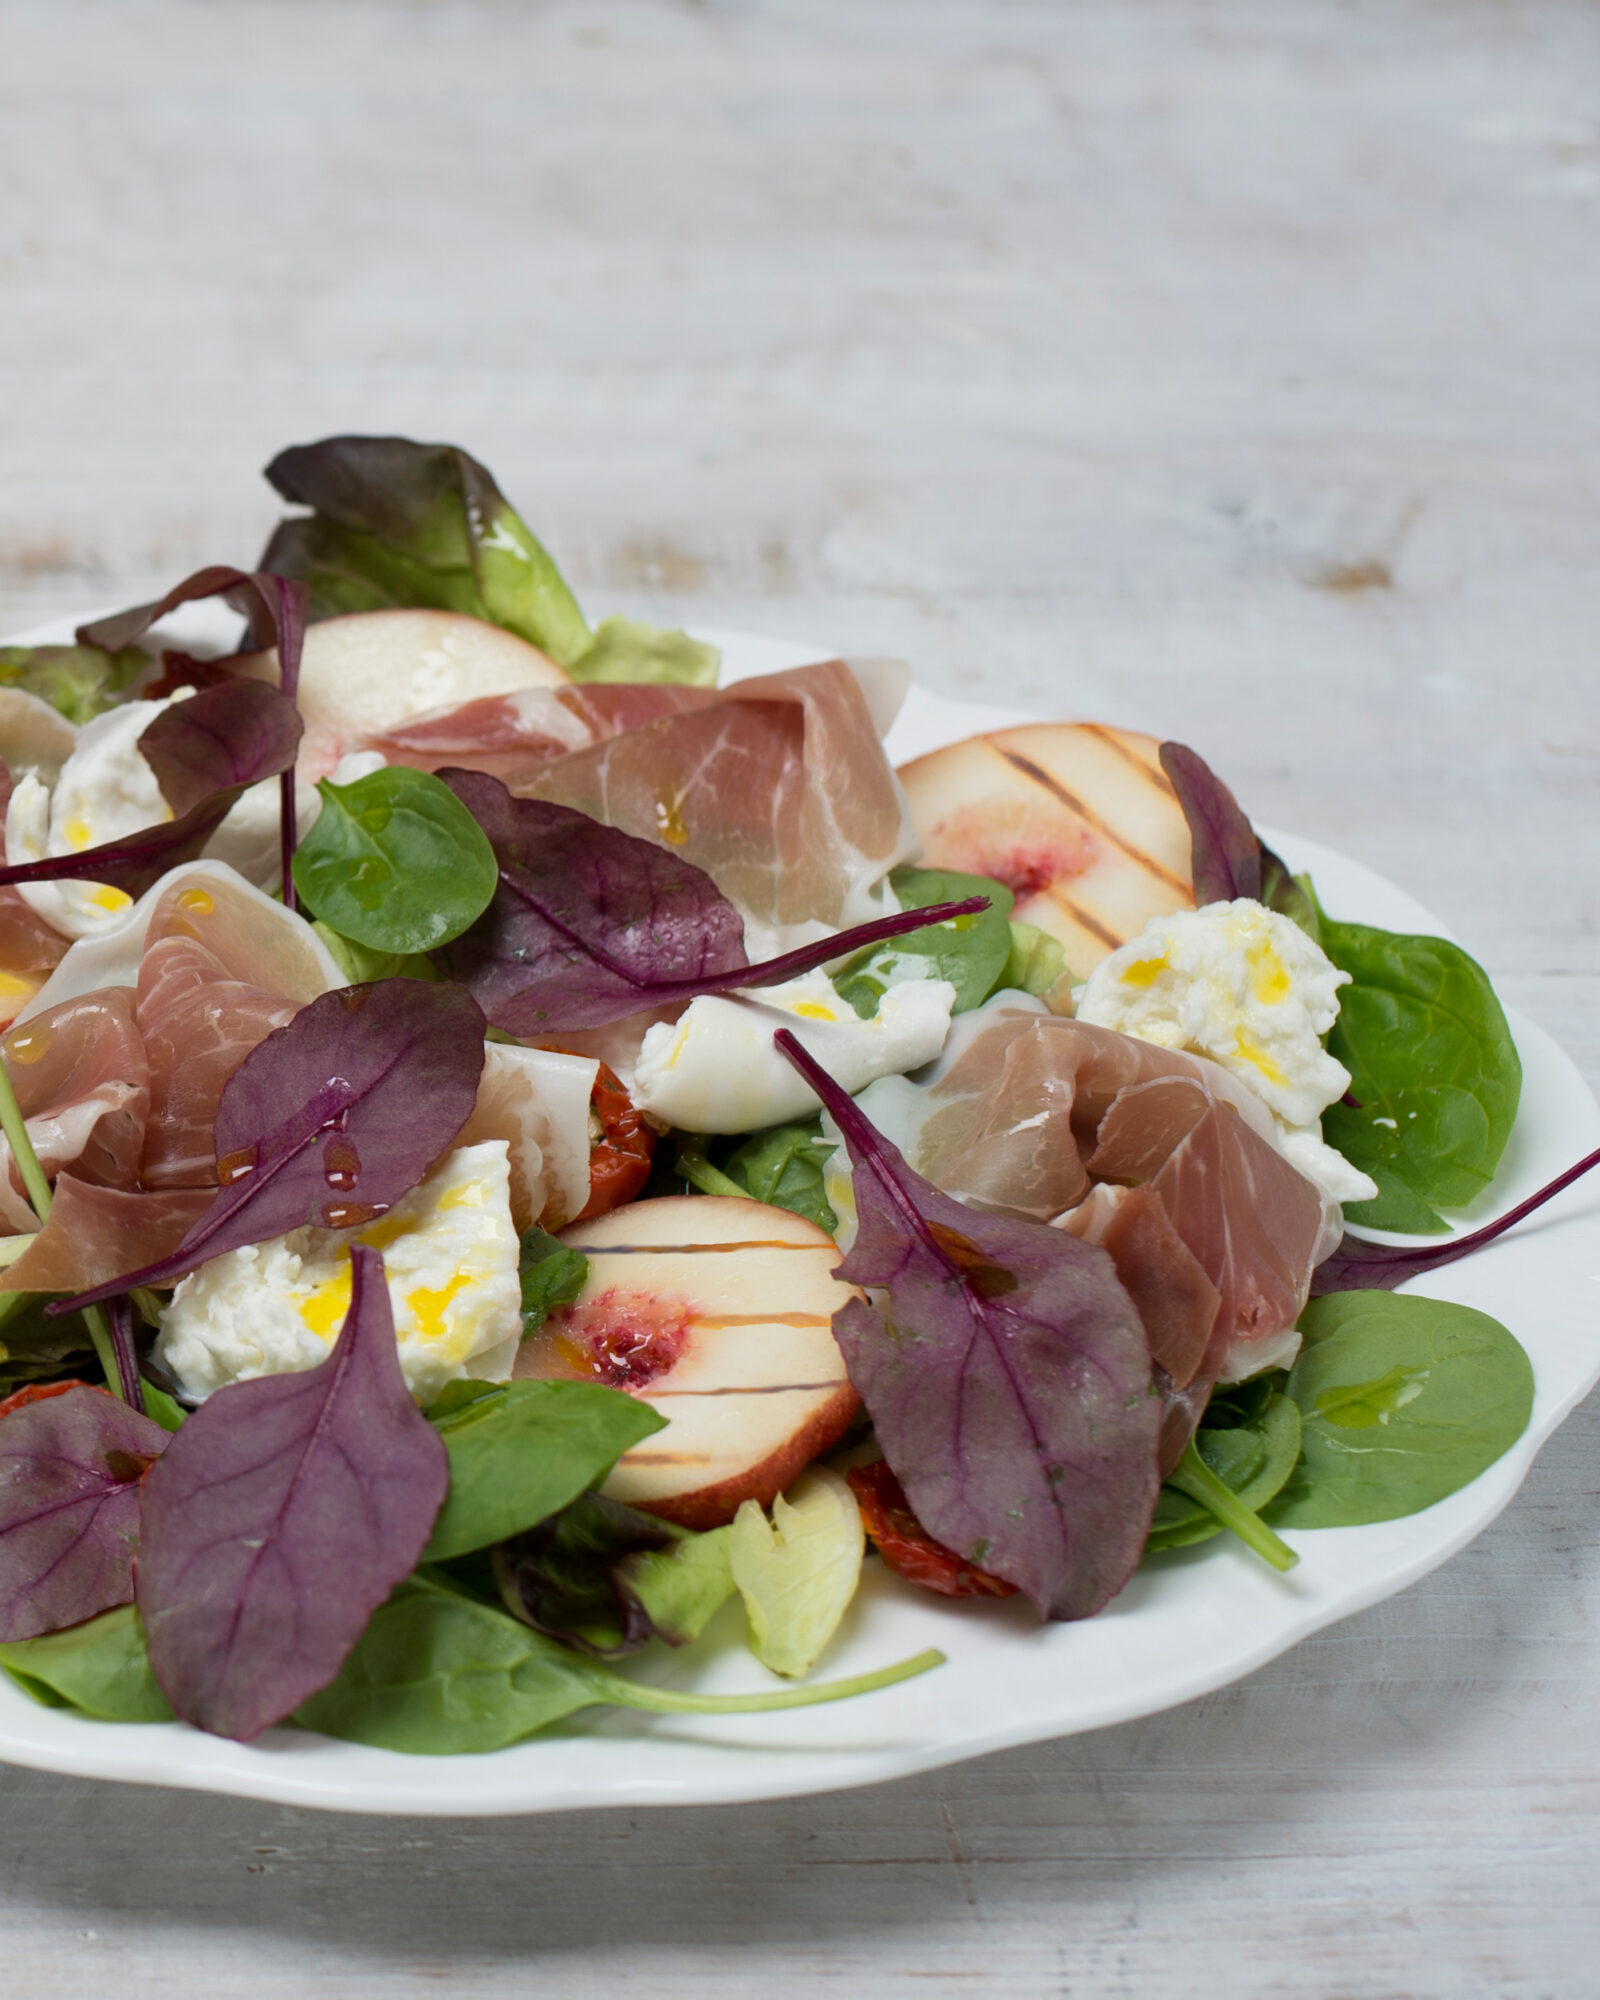 Recipe for Roast Peach, Prosciutto and Mozzarella Salad